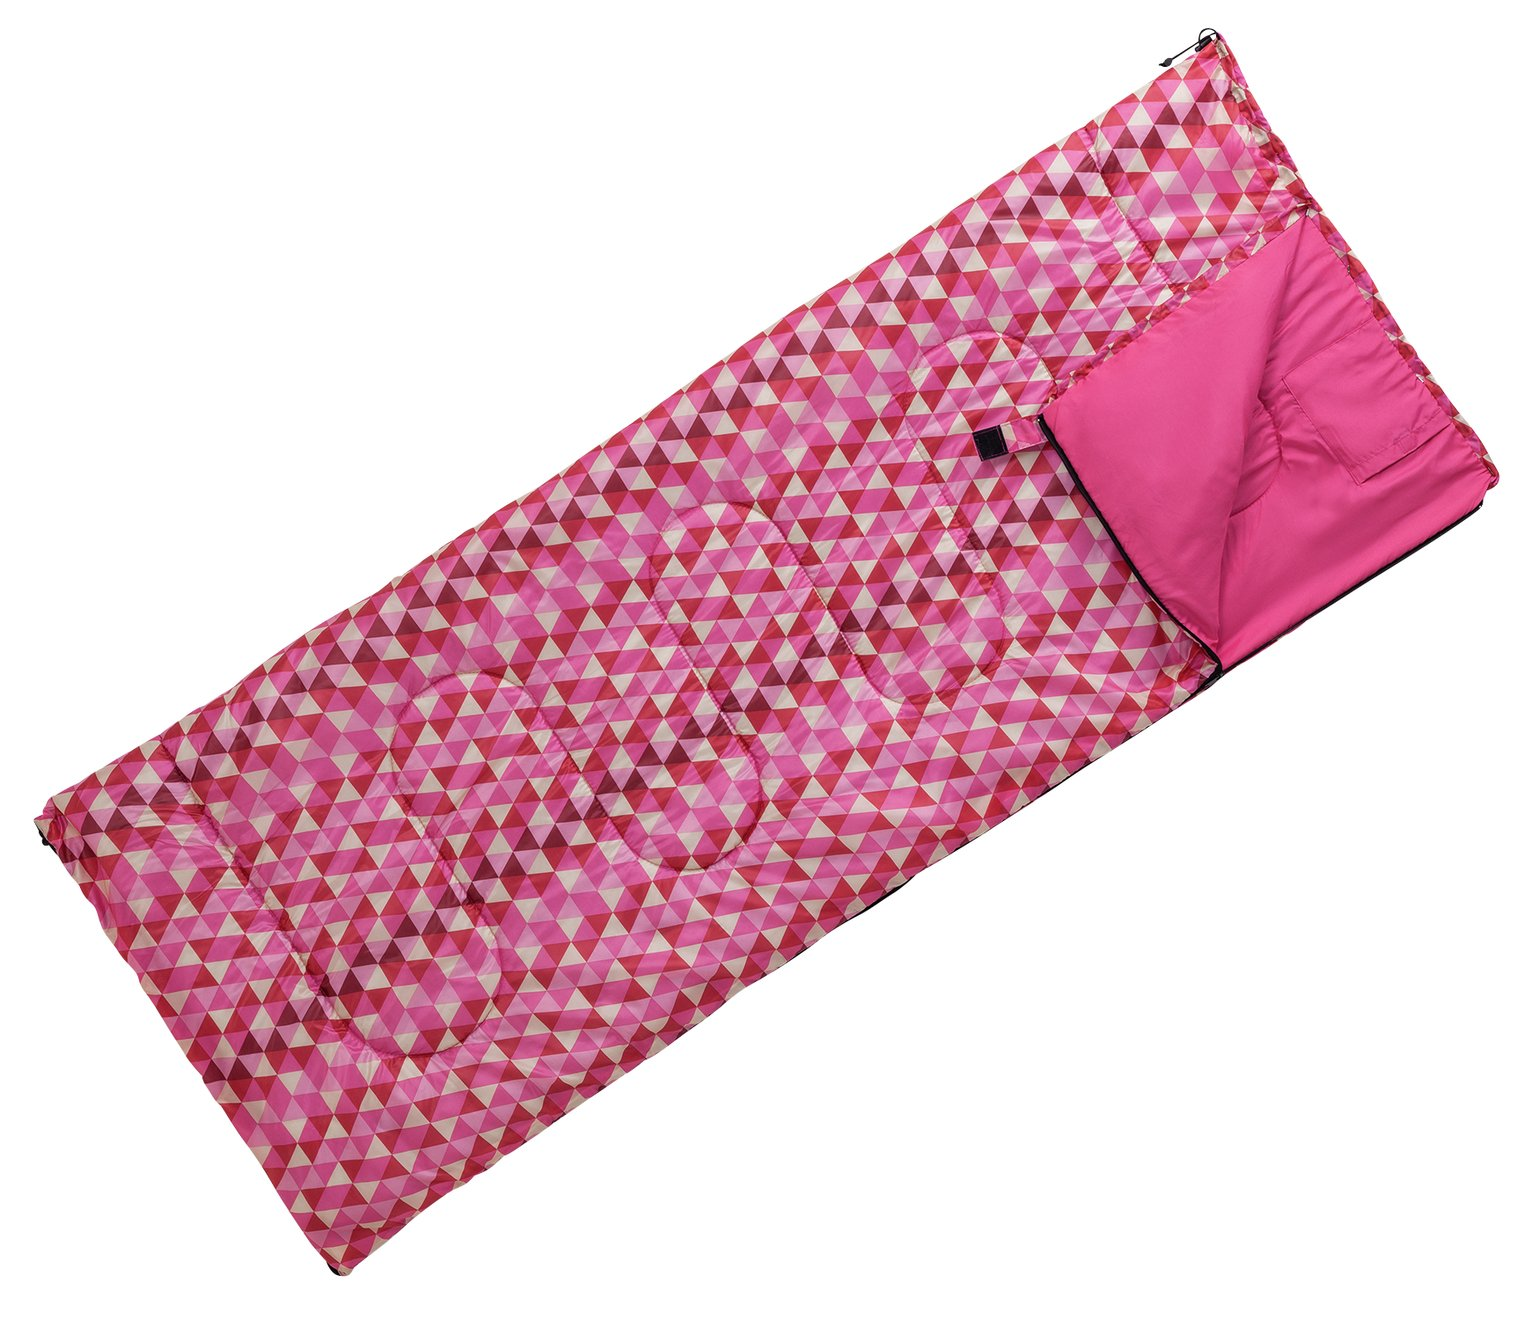 ProAction 300GSM Sleeping Bag - Aztec Pink